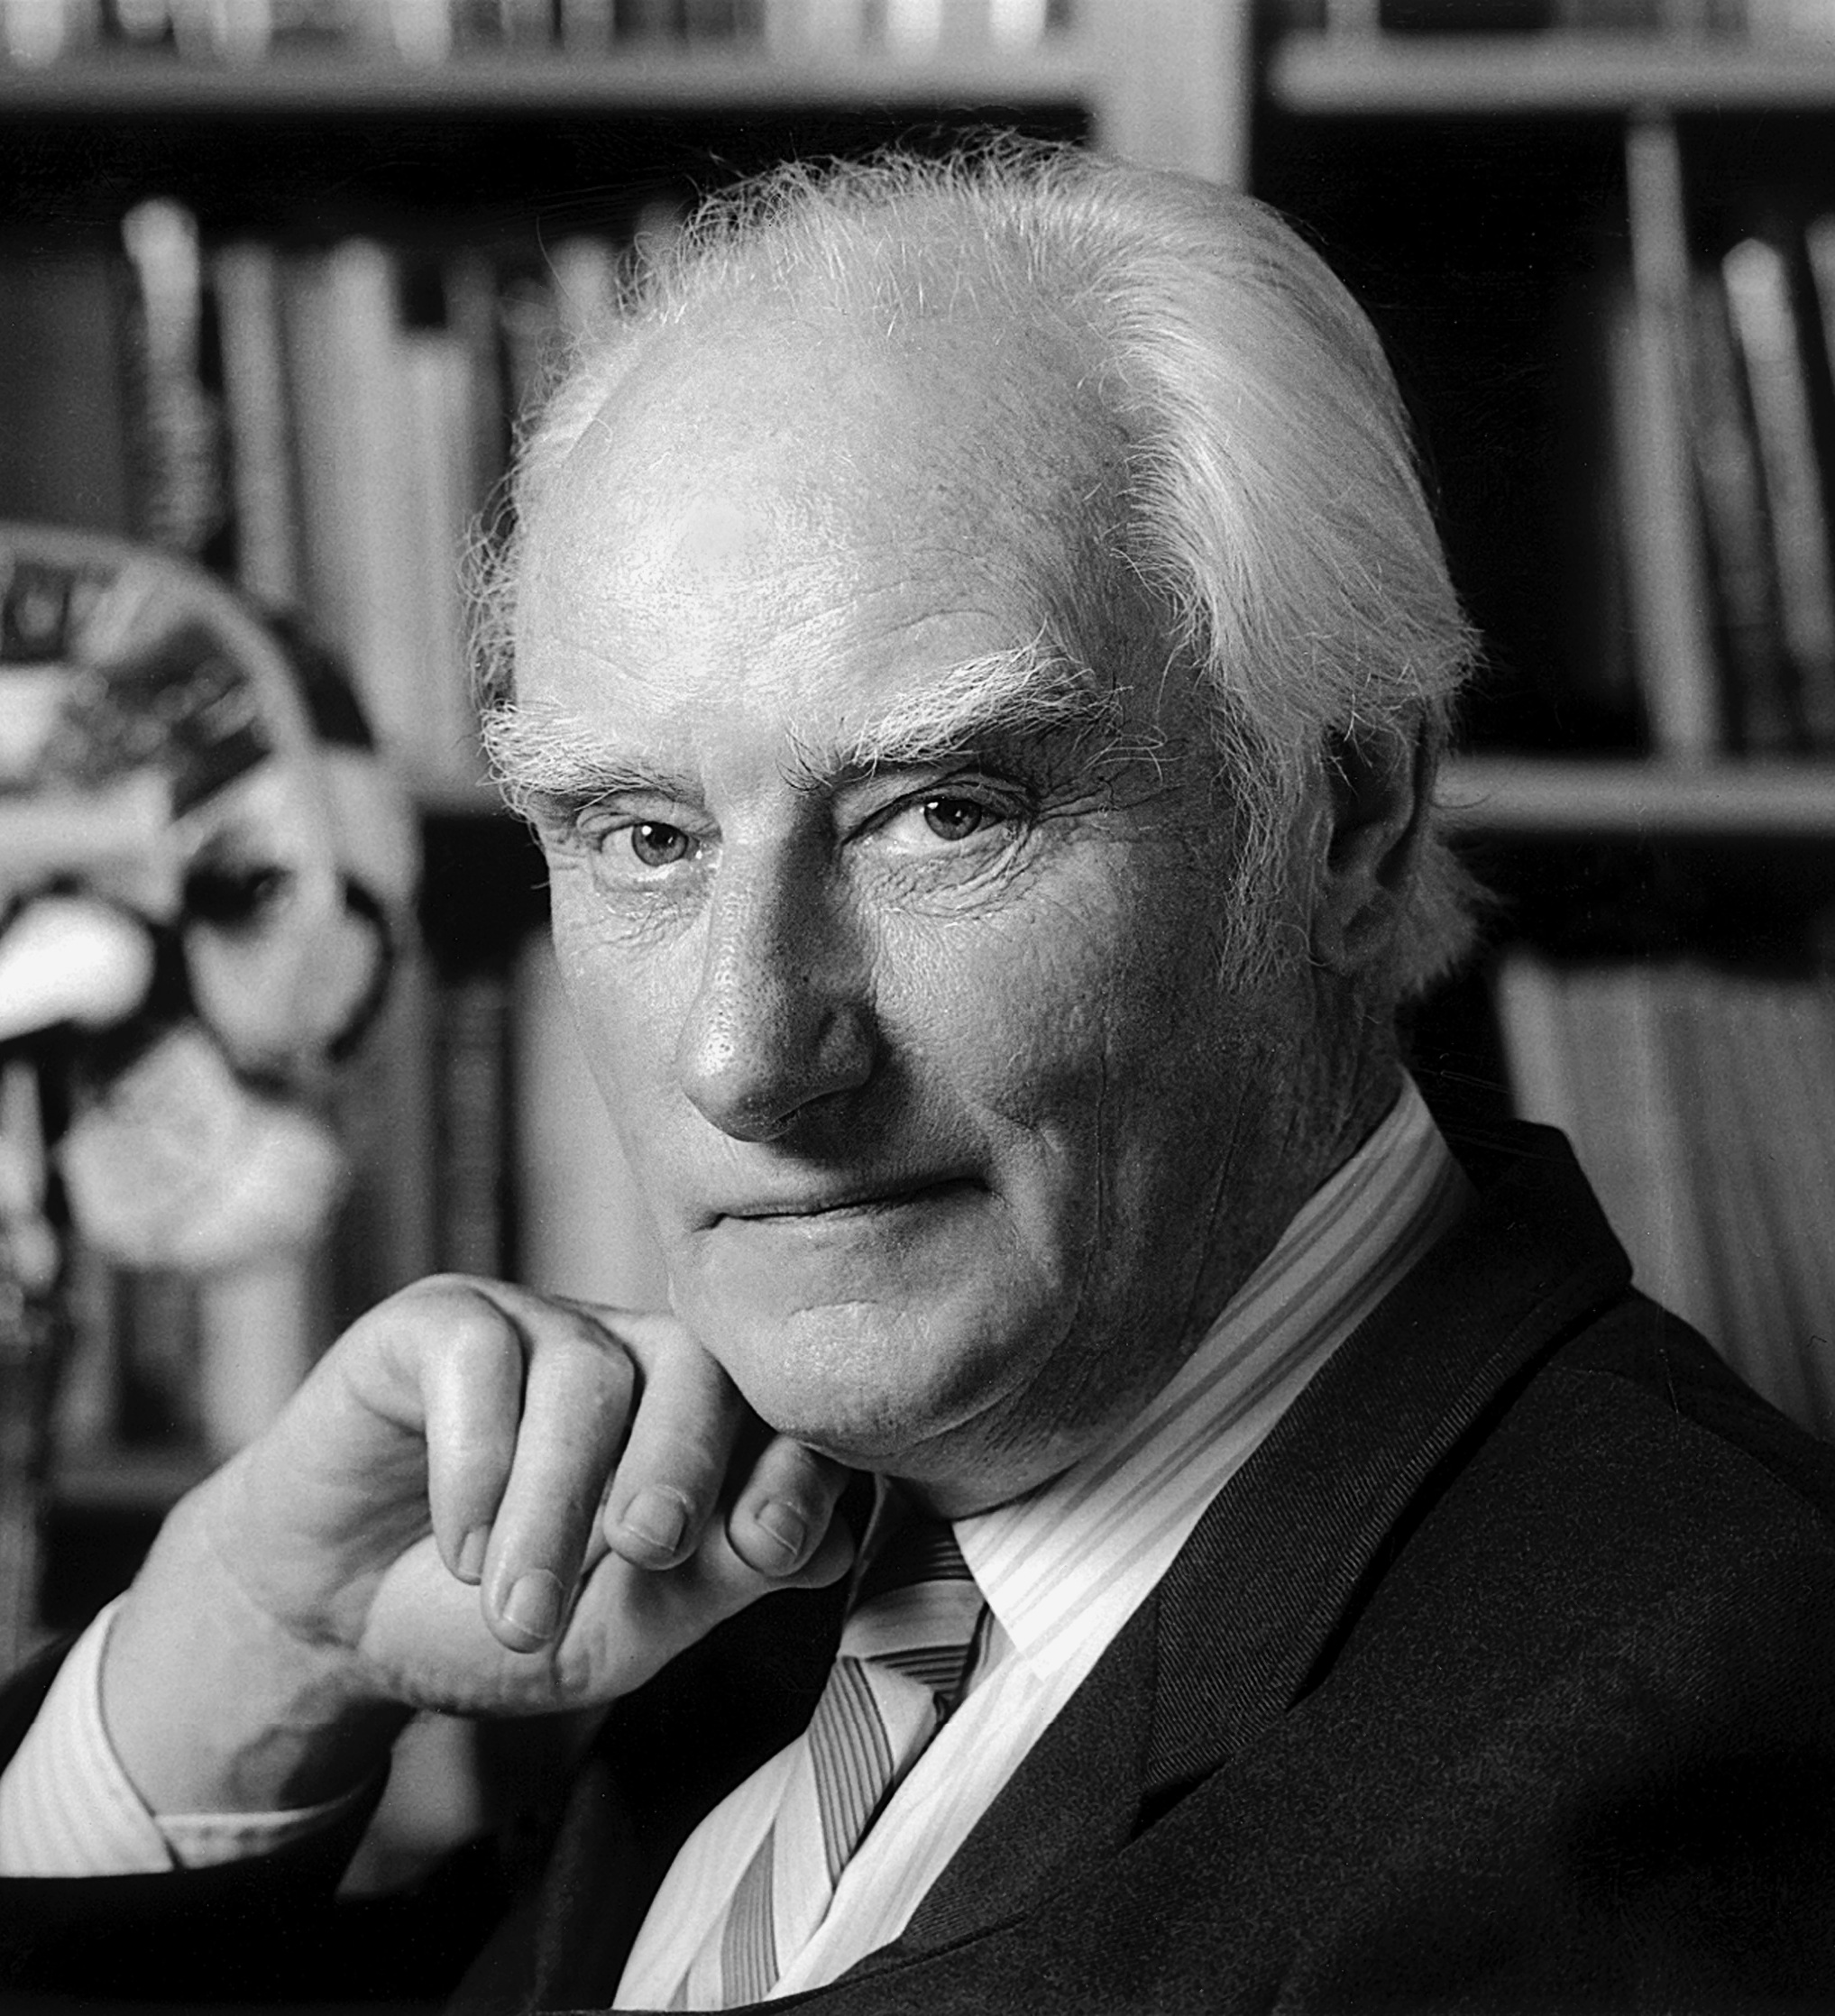 http://upload.wikimedia.org/wikipedia/commons/9/99/Francis_Crick_crop.jpg